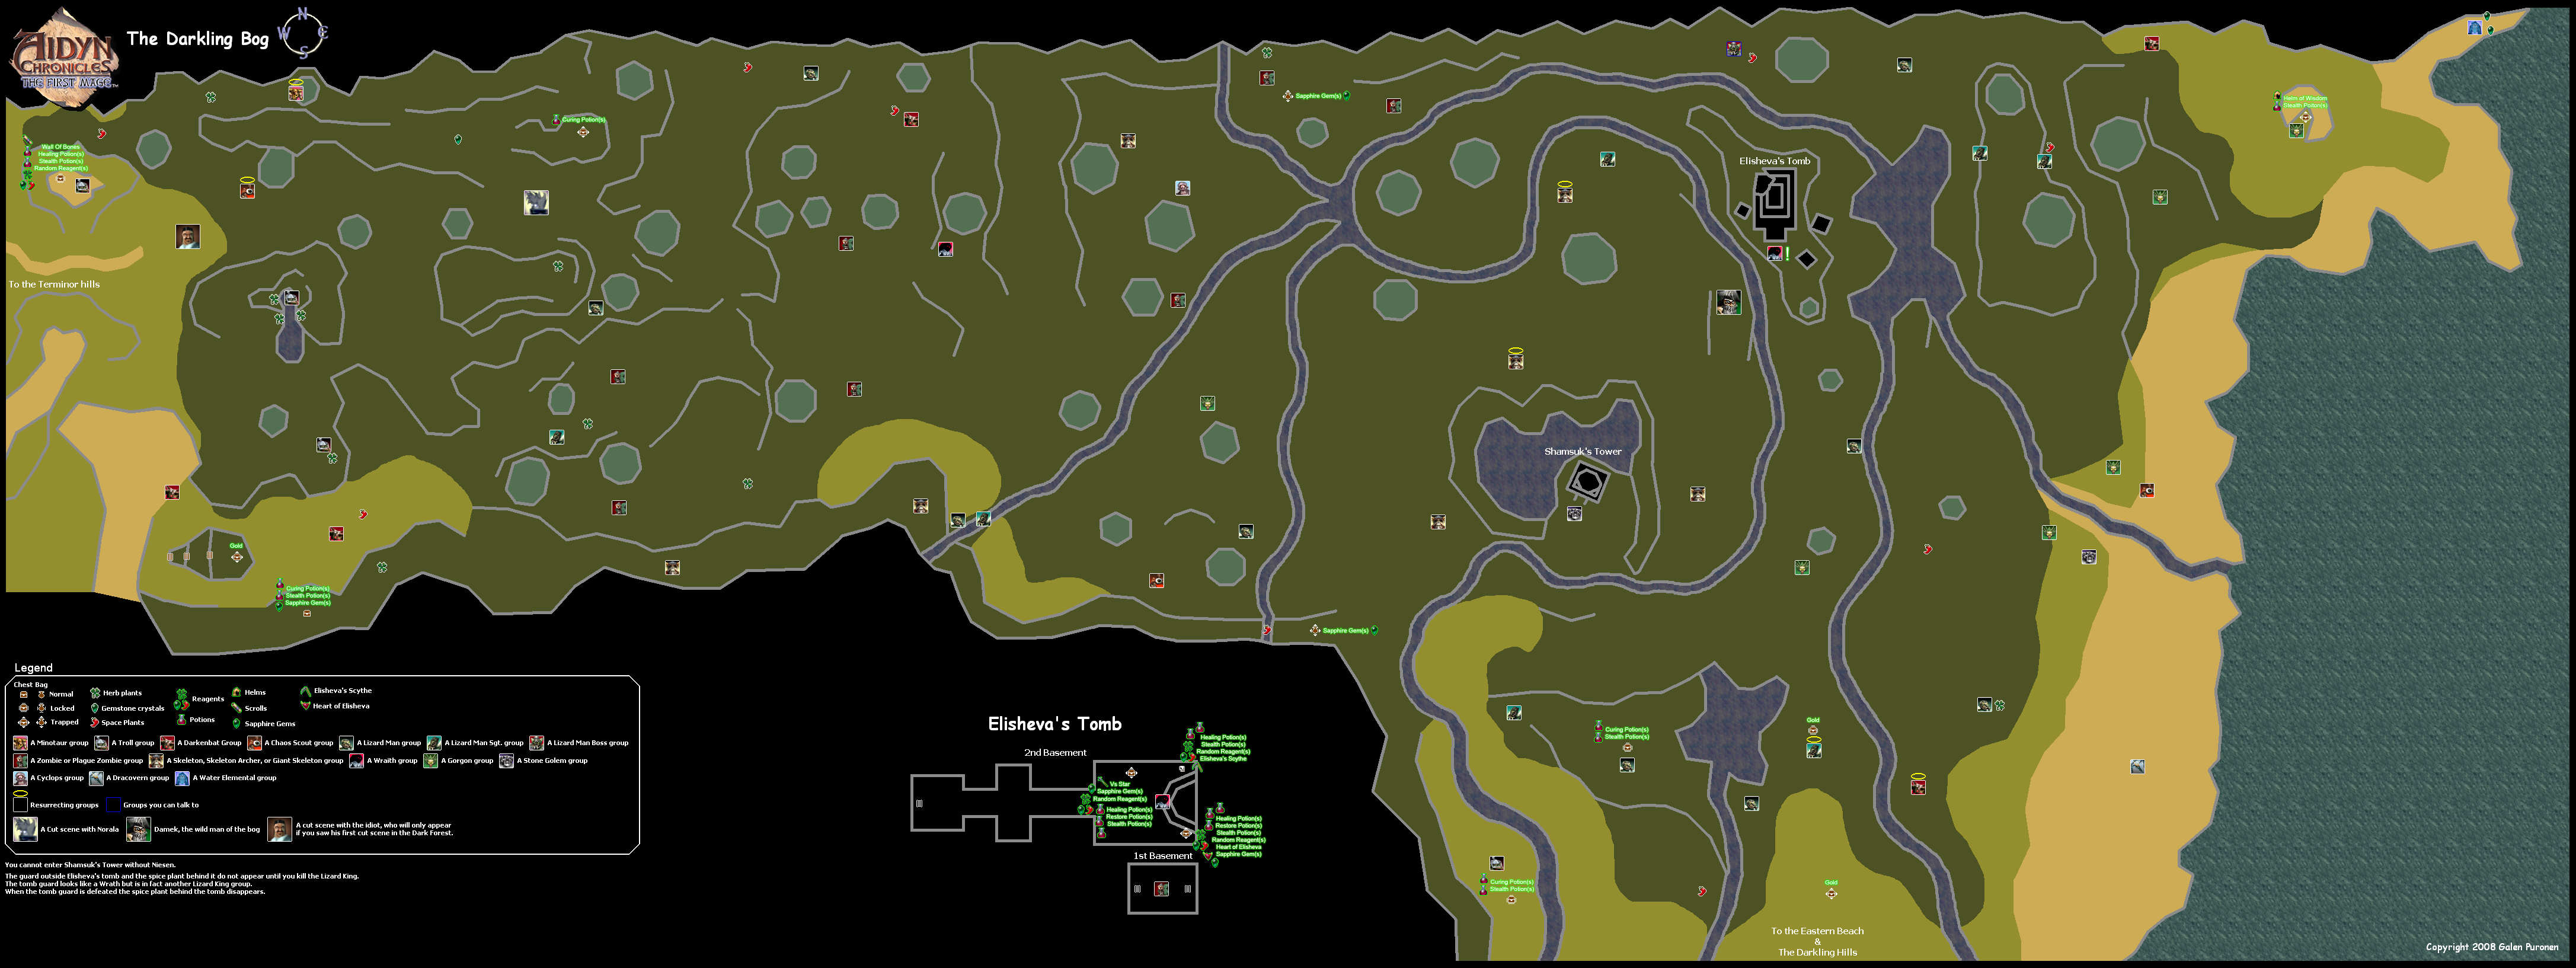 The Video Game Atlas - N64 Maps